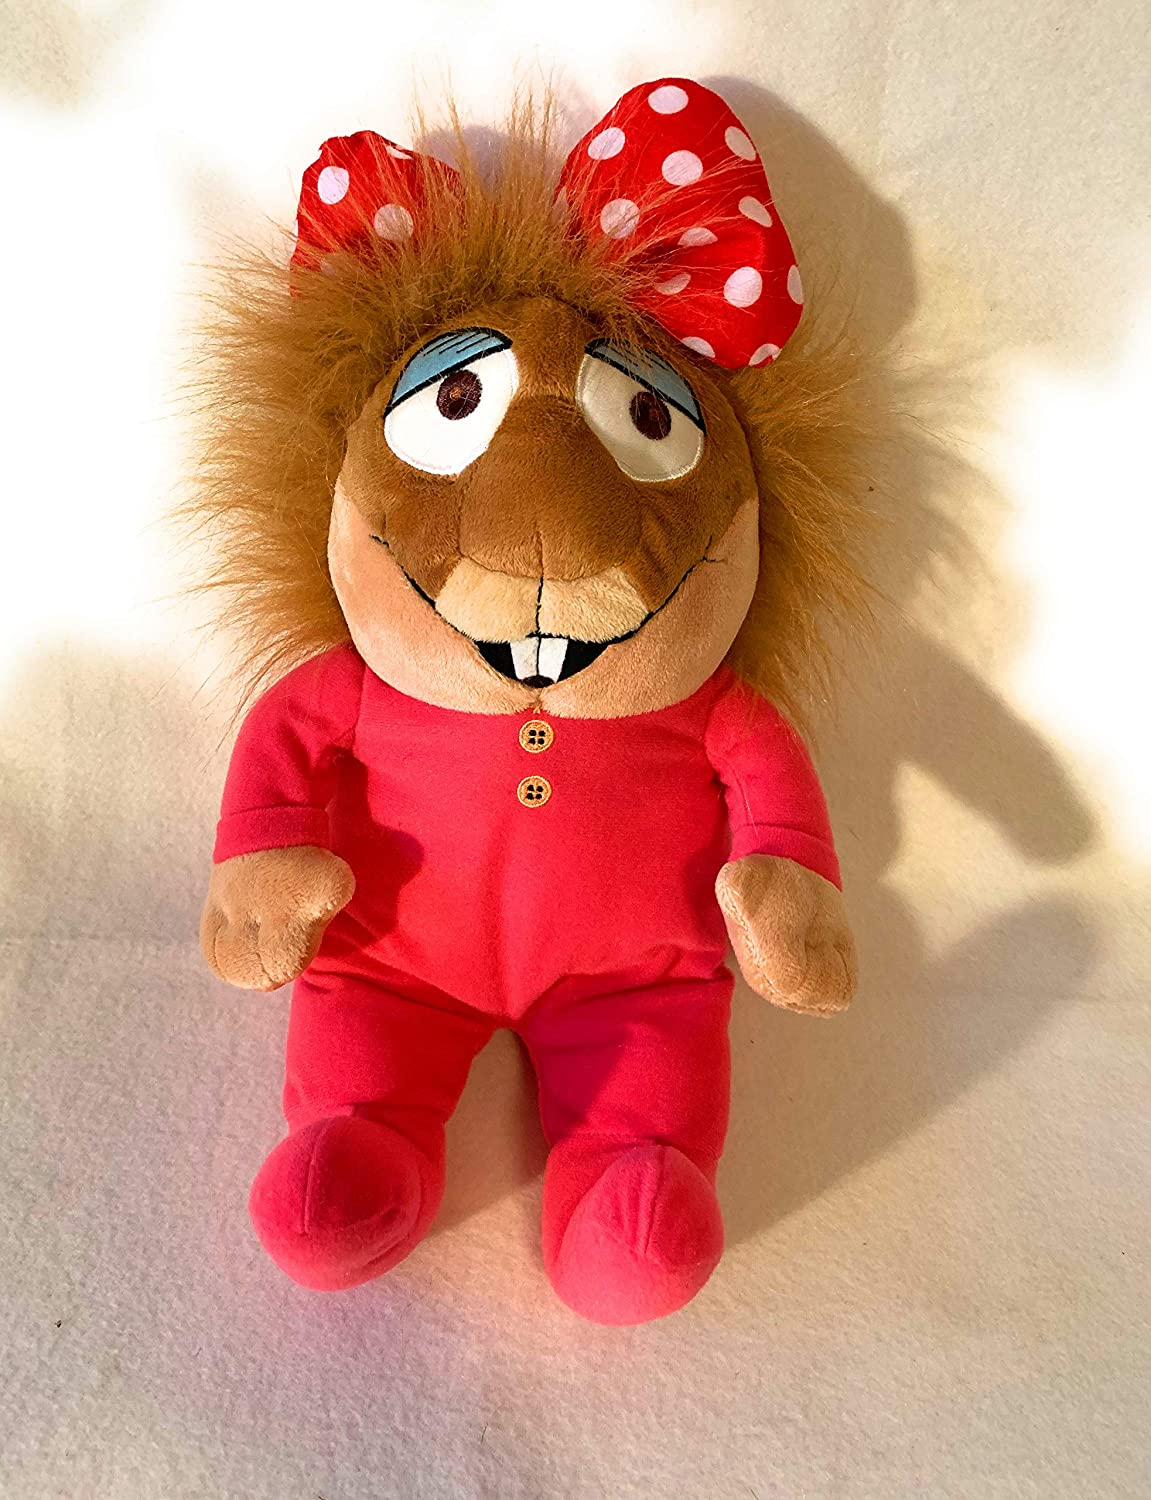 Weighted stuffed animal AUTISM SENSORY TOY Little Critter with 3 lbs